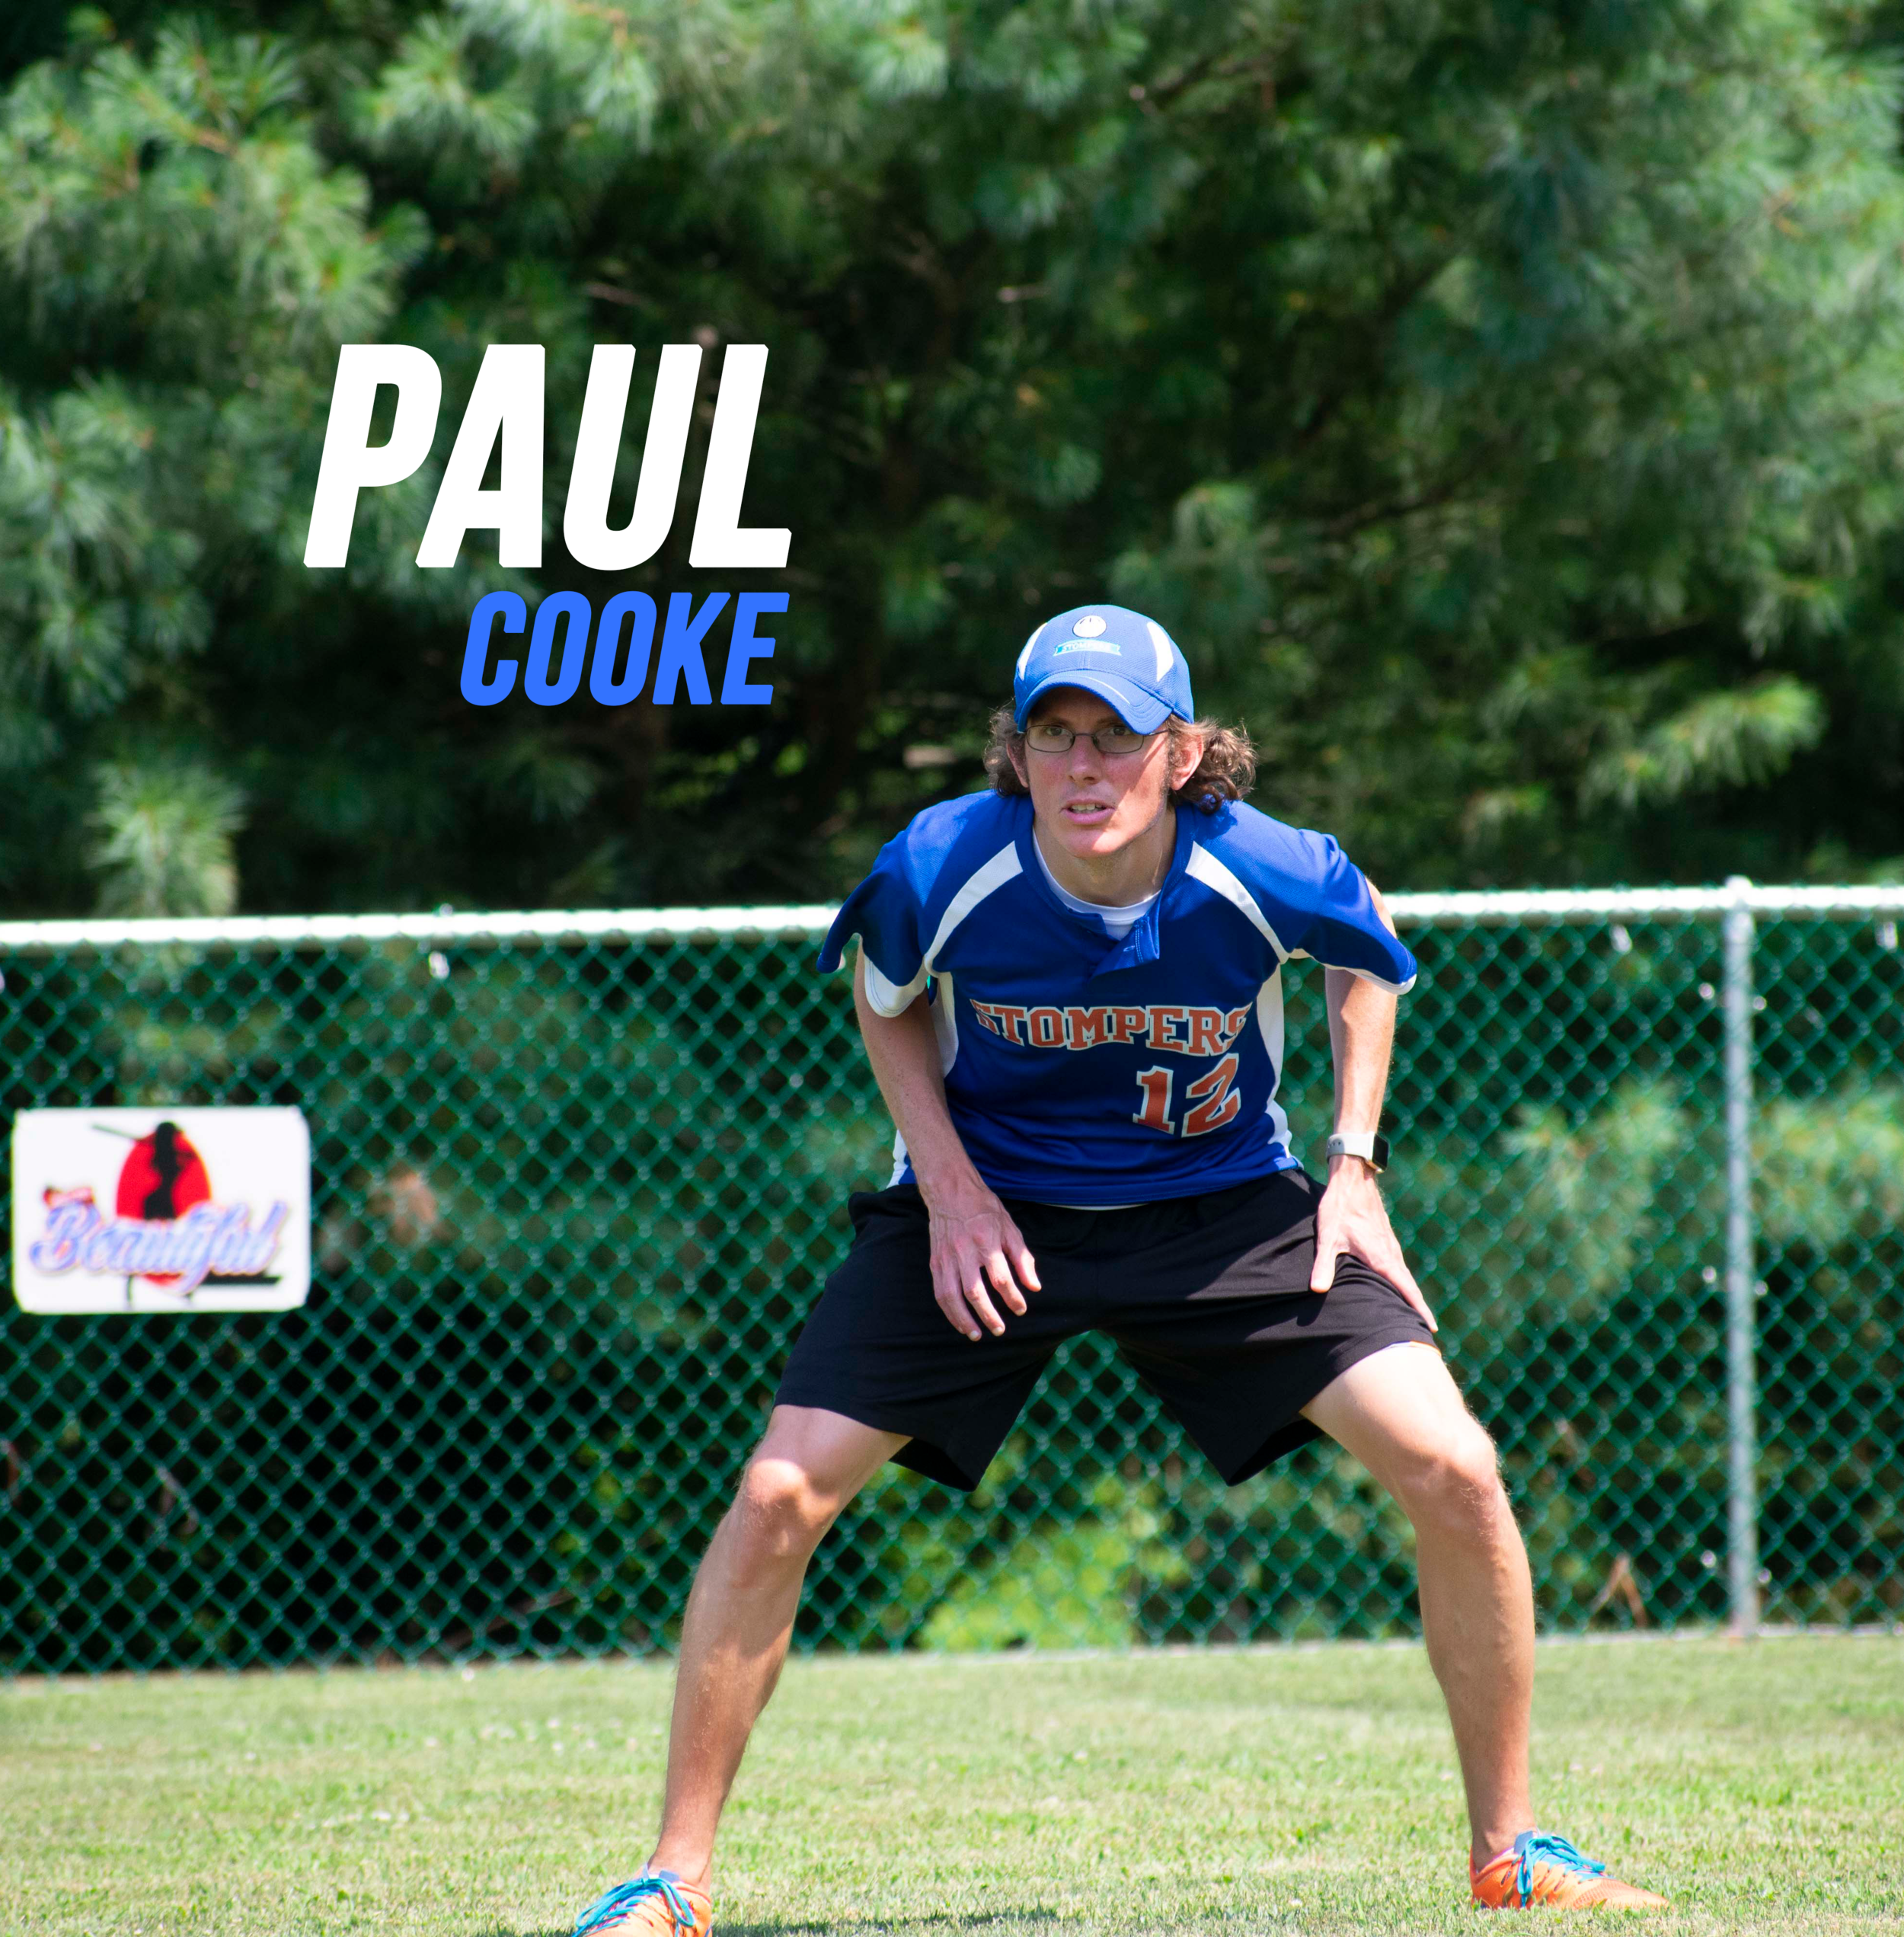 Paul Cooke STOMPERS player art concept.png